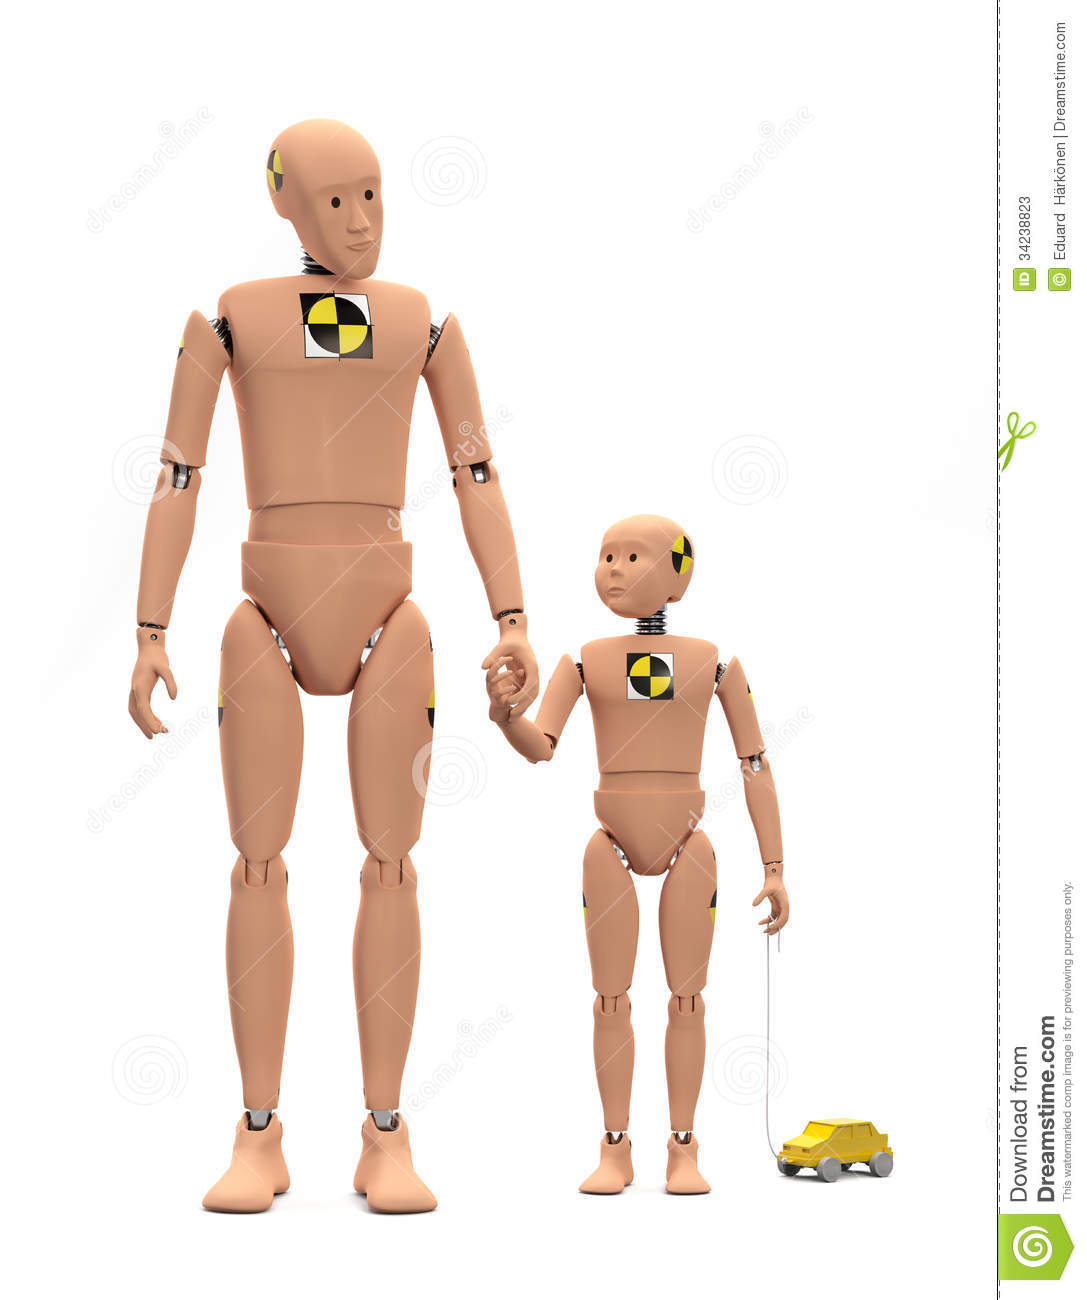 b8a7d1332b5a Crash Test Dummies Isolated Stock Image - Image of plastic ...